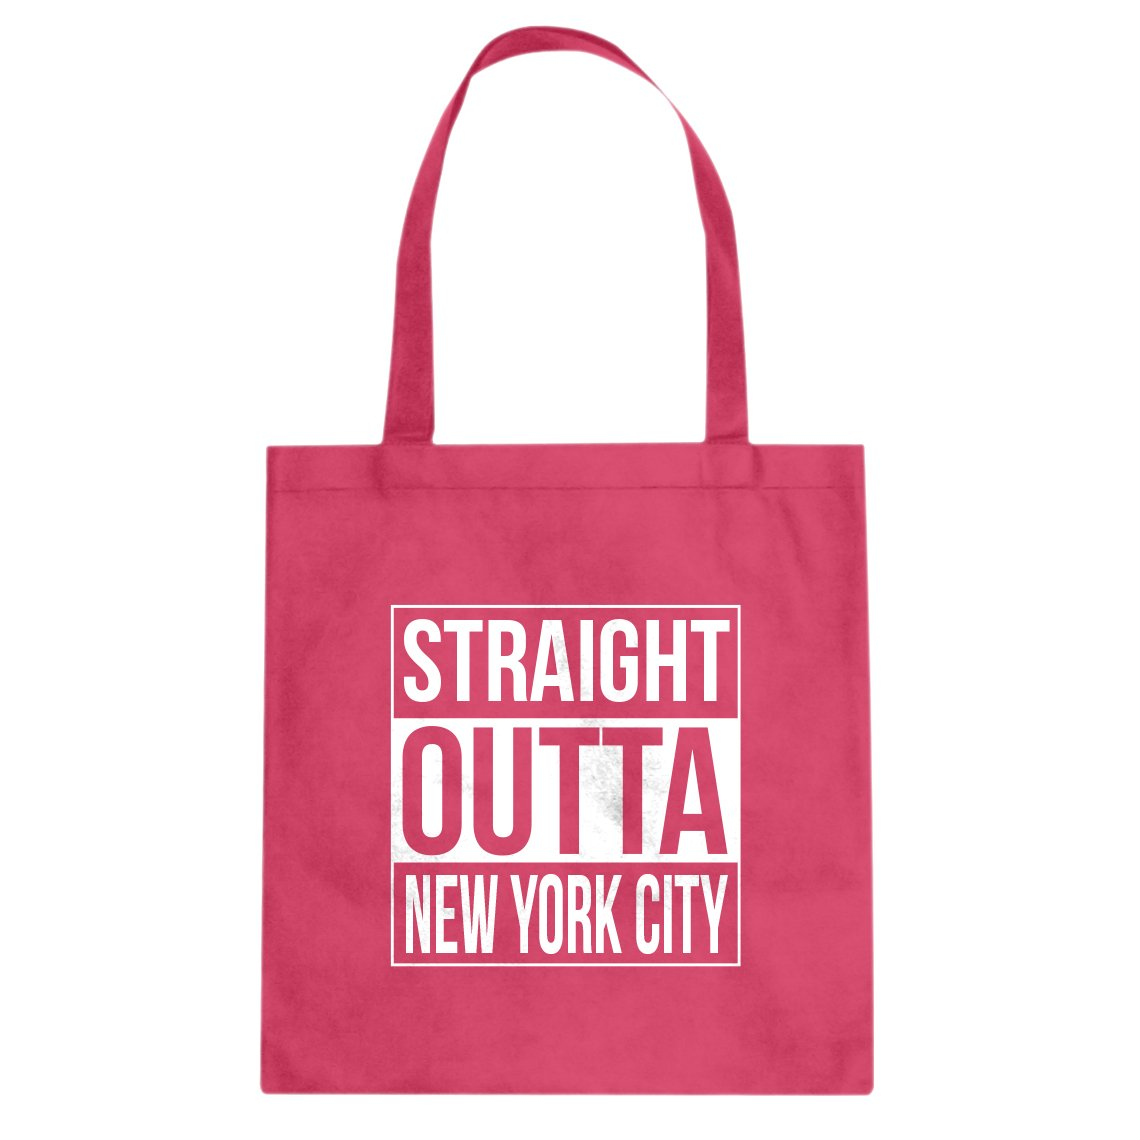 Indica Plateau Straight Outta New York City Cotton Canvas Tote Bag